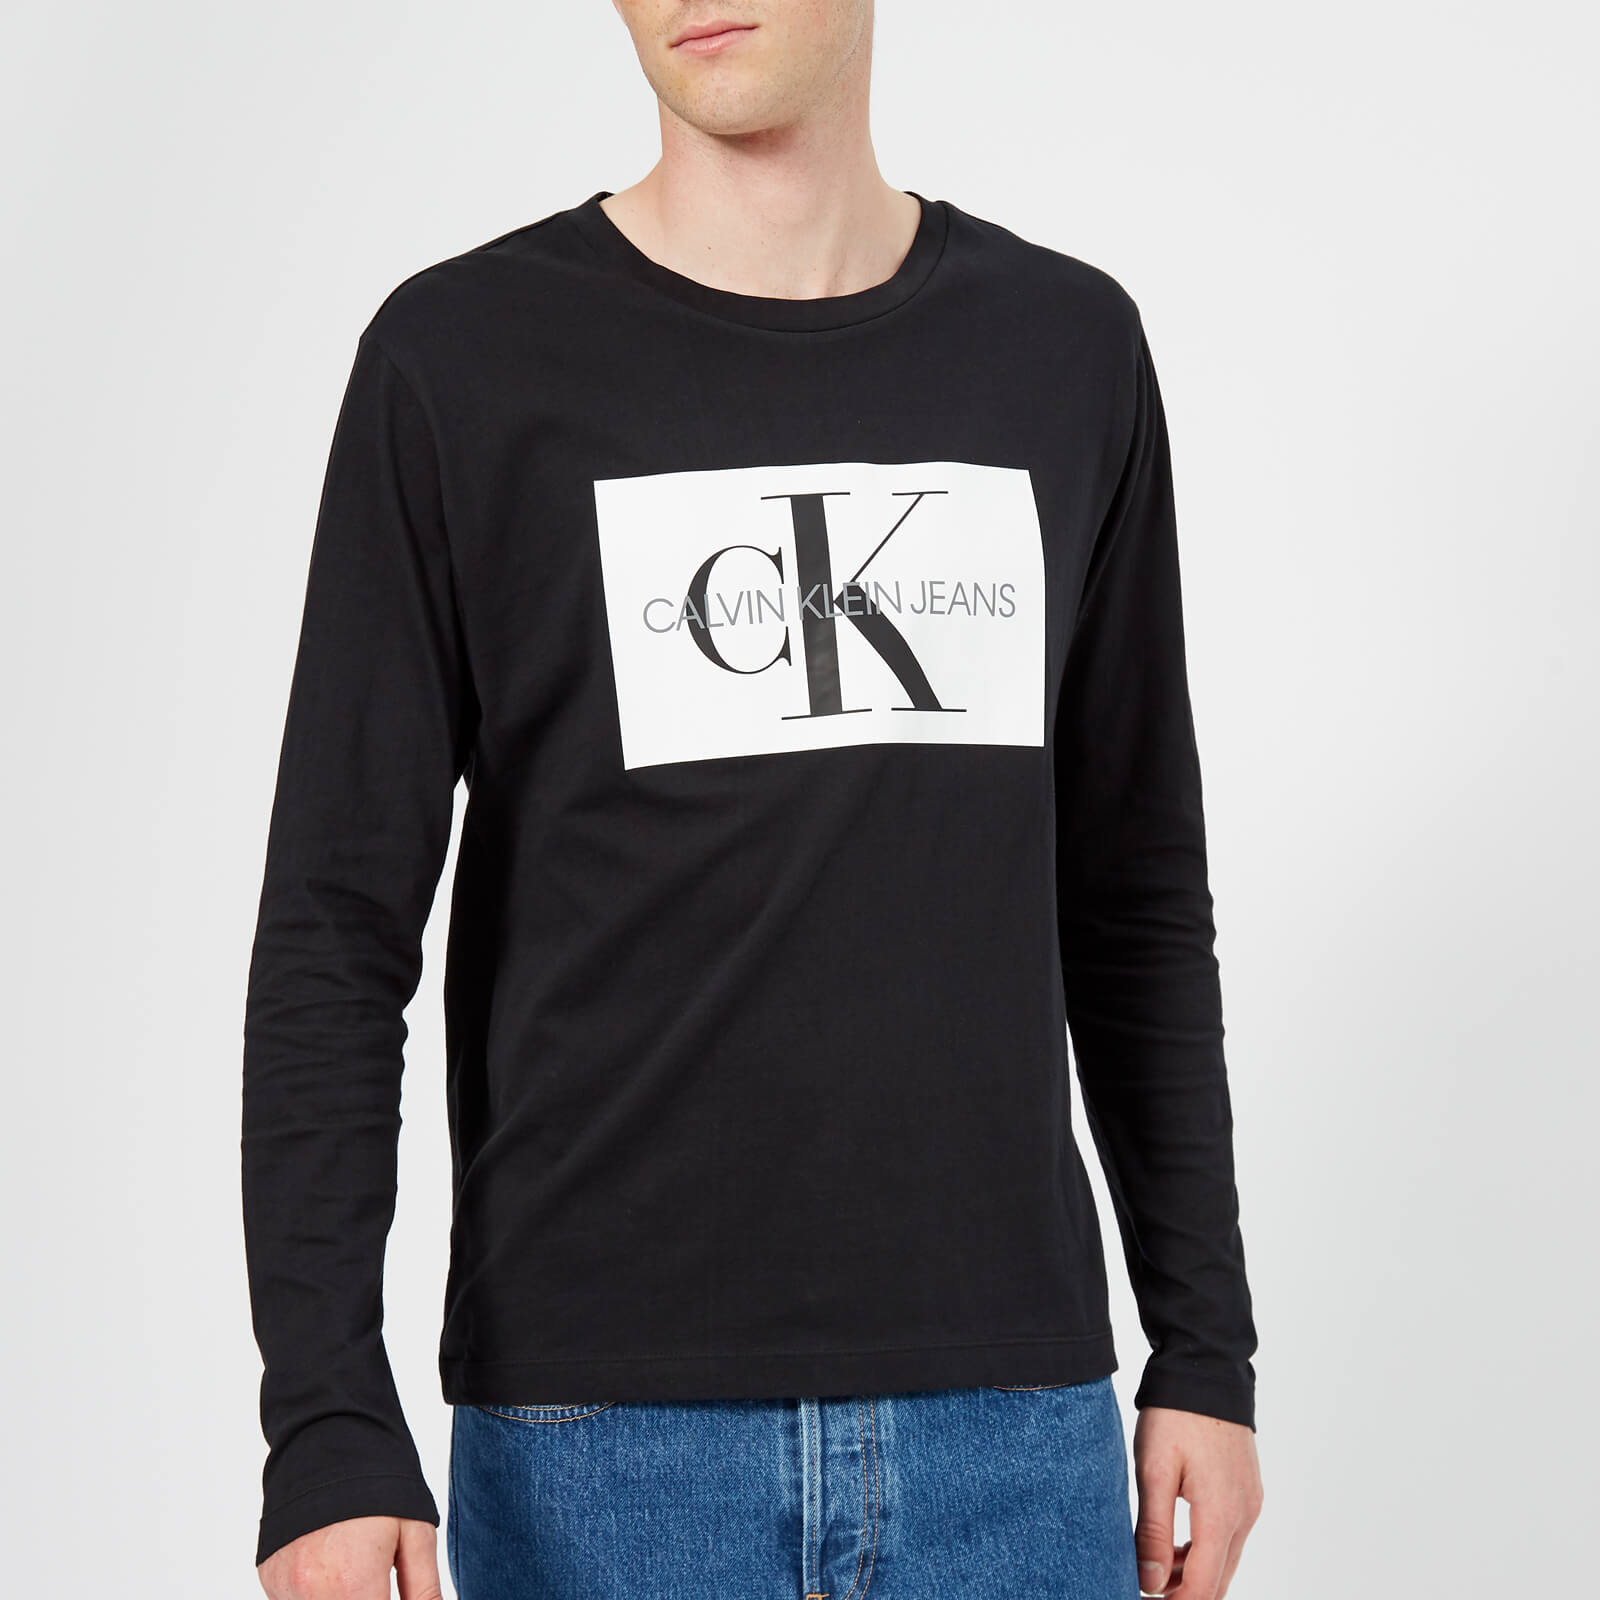 815d27390aade ... Calvin Klein Jeans Men s Monogram Box Logo Long Sleeve T-Shirt - CK  Black